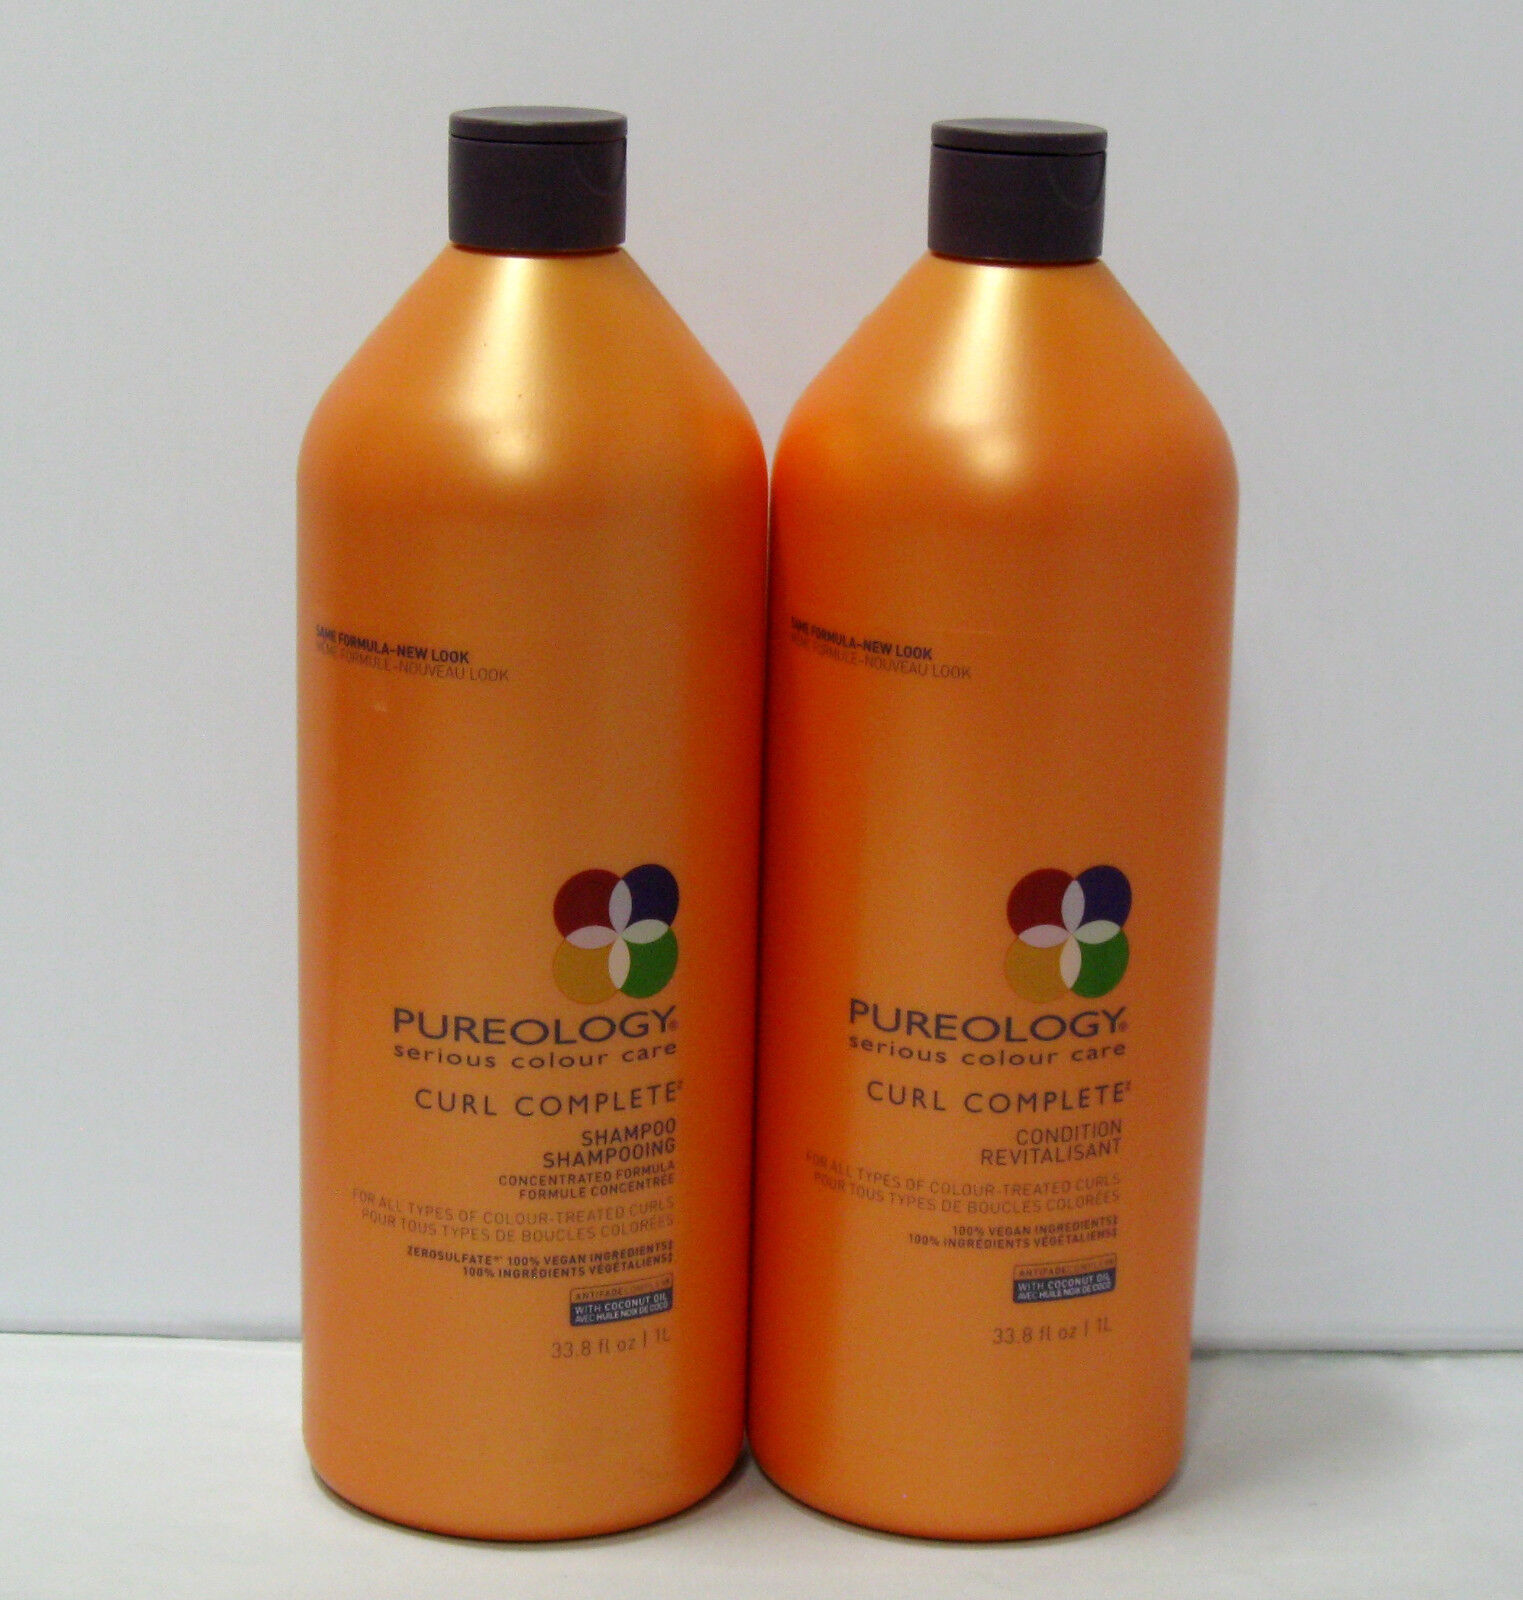 Pureology Curl Complete Shampoo and Conditioner 33.8 oz Liter Set Duo PACK